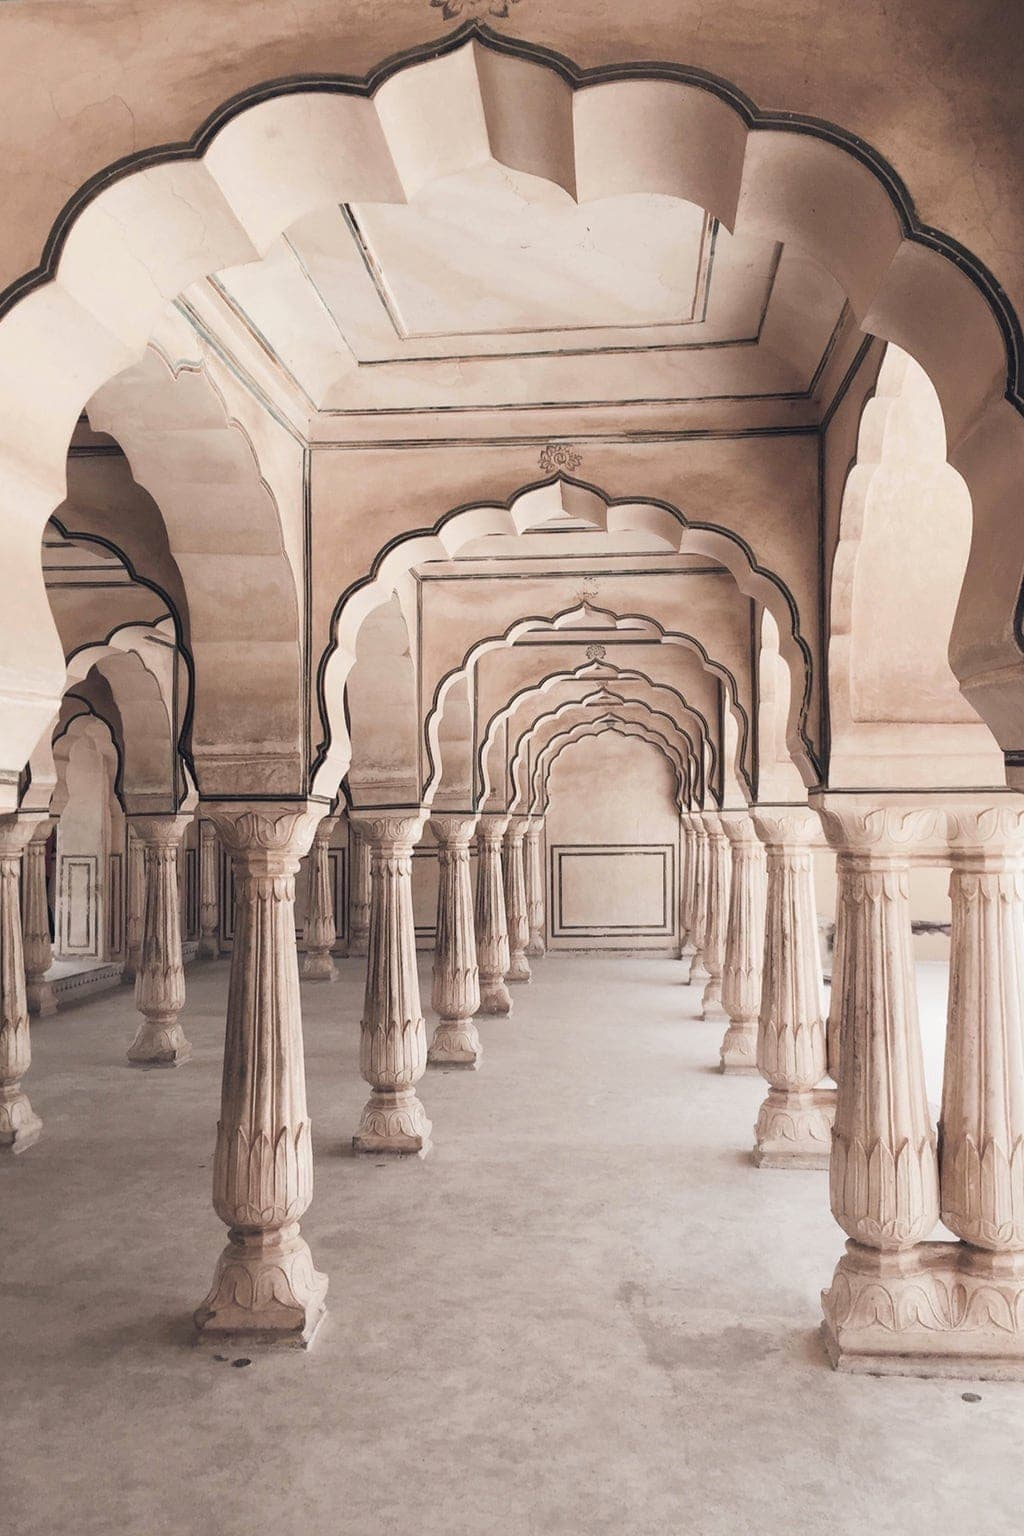 Amber Fort, the epitome of Rajasthani Charm